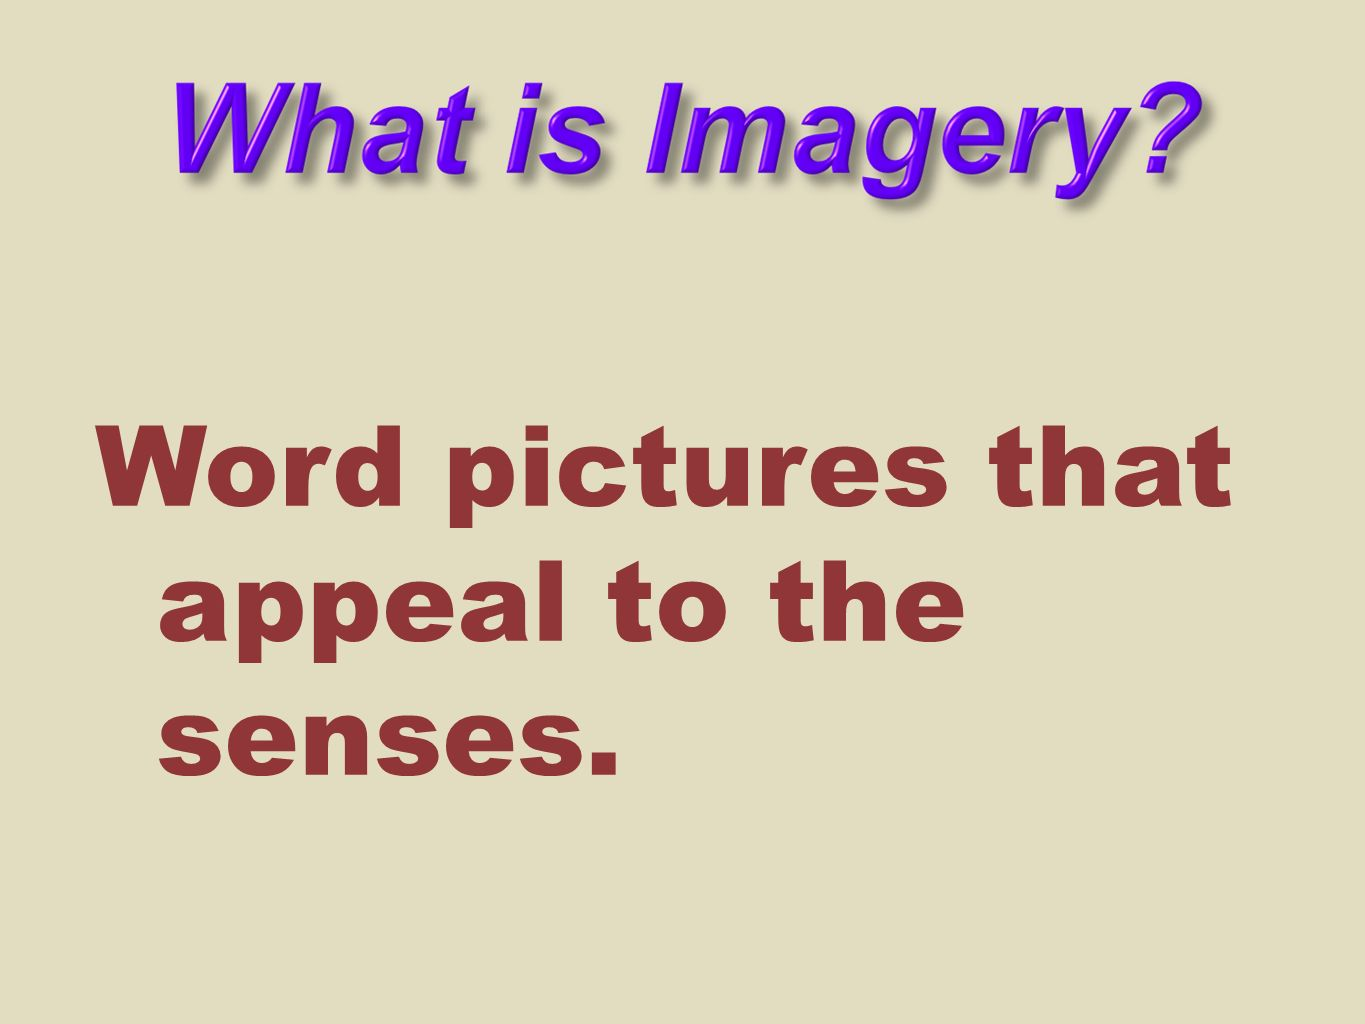 Word pictures that appeal to the senses.